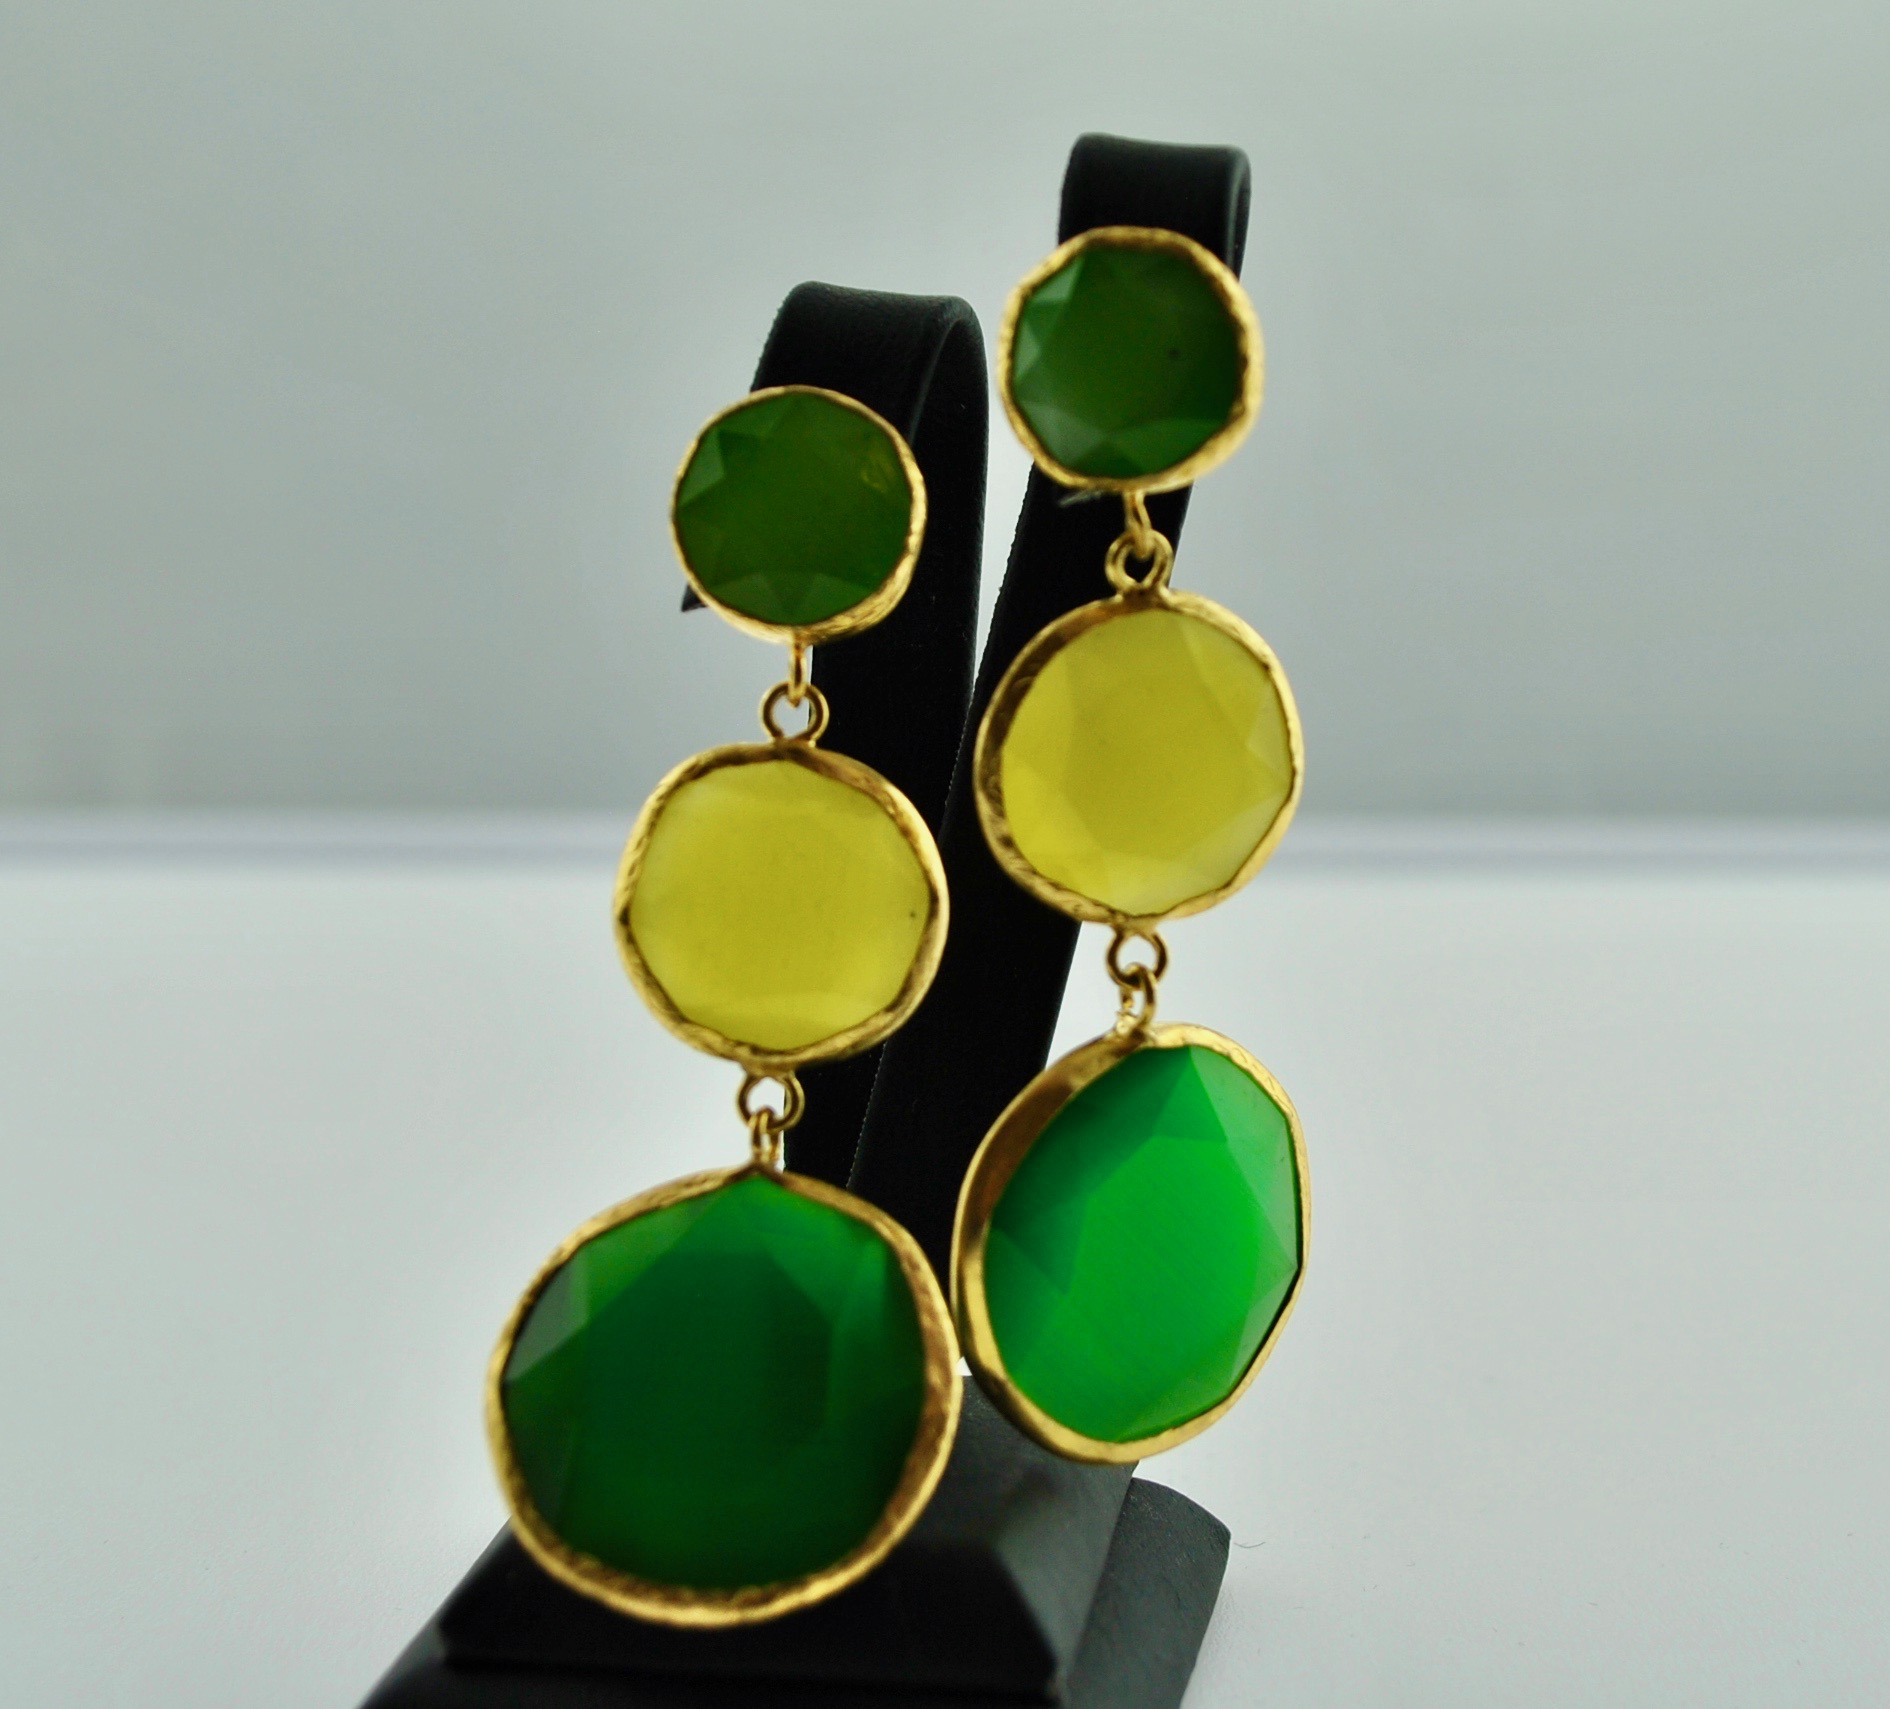 Green and yellow 3 Tier Earrings